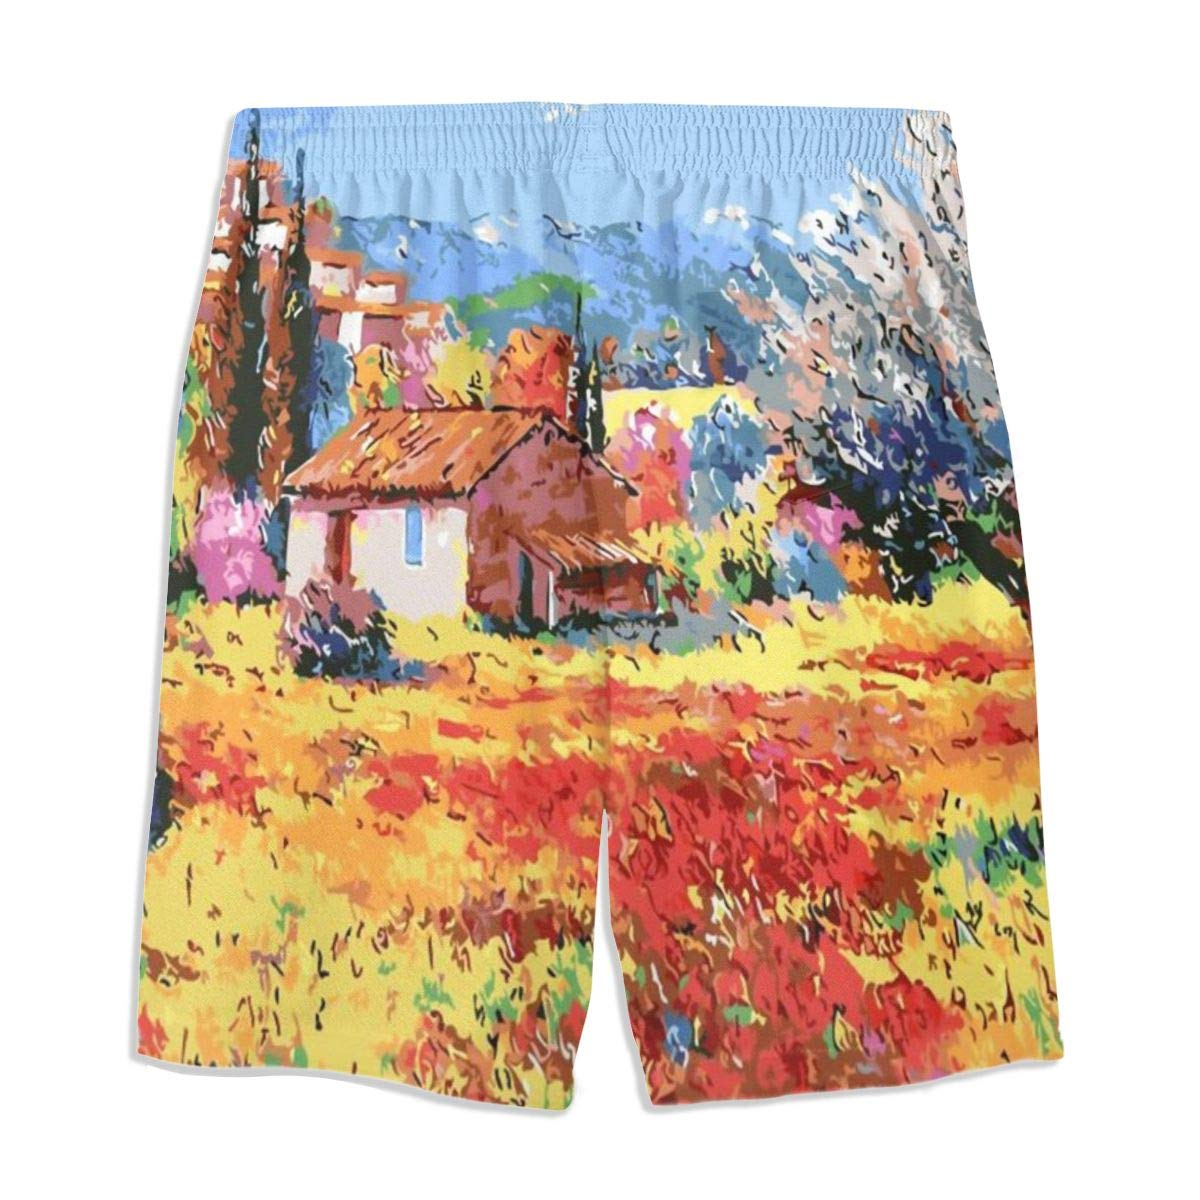 Italian Unique Poppy Fields Art Bathing Suits Teens Quick-Drying Surf Beach Pants Boardshort